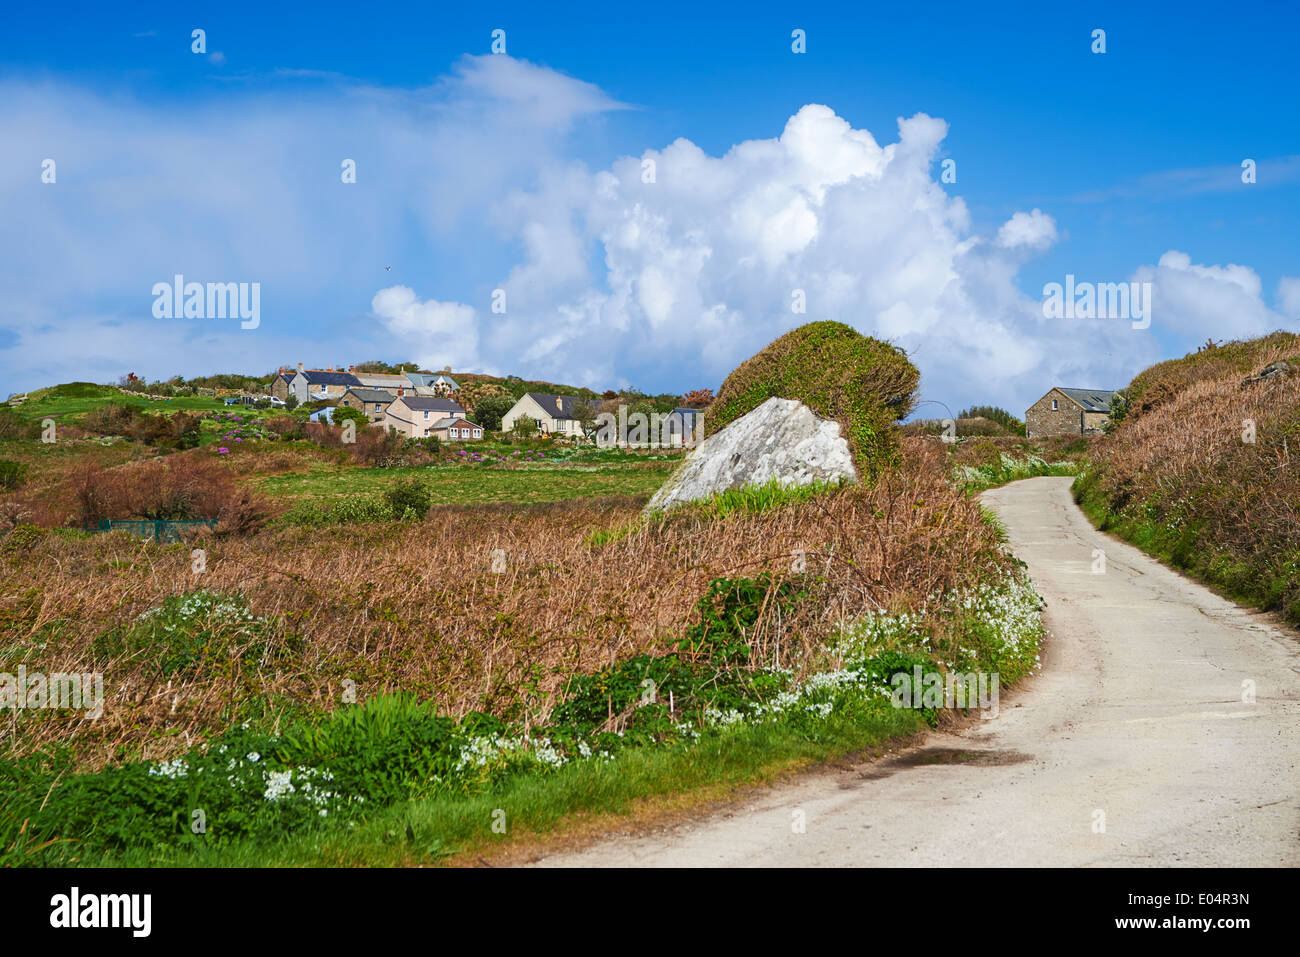 twisting winding road at Bryher, Isles of Scilly, Scillies, Cornwall in April - Stock Image